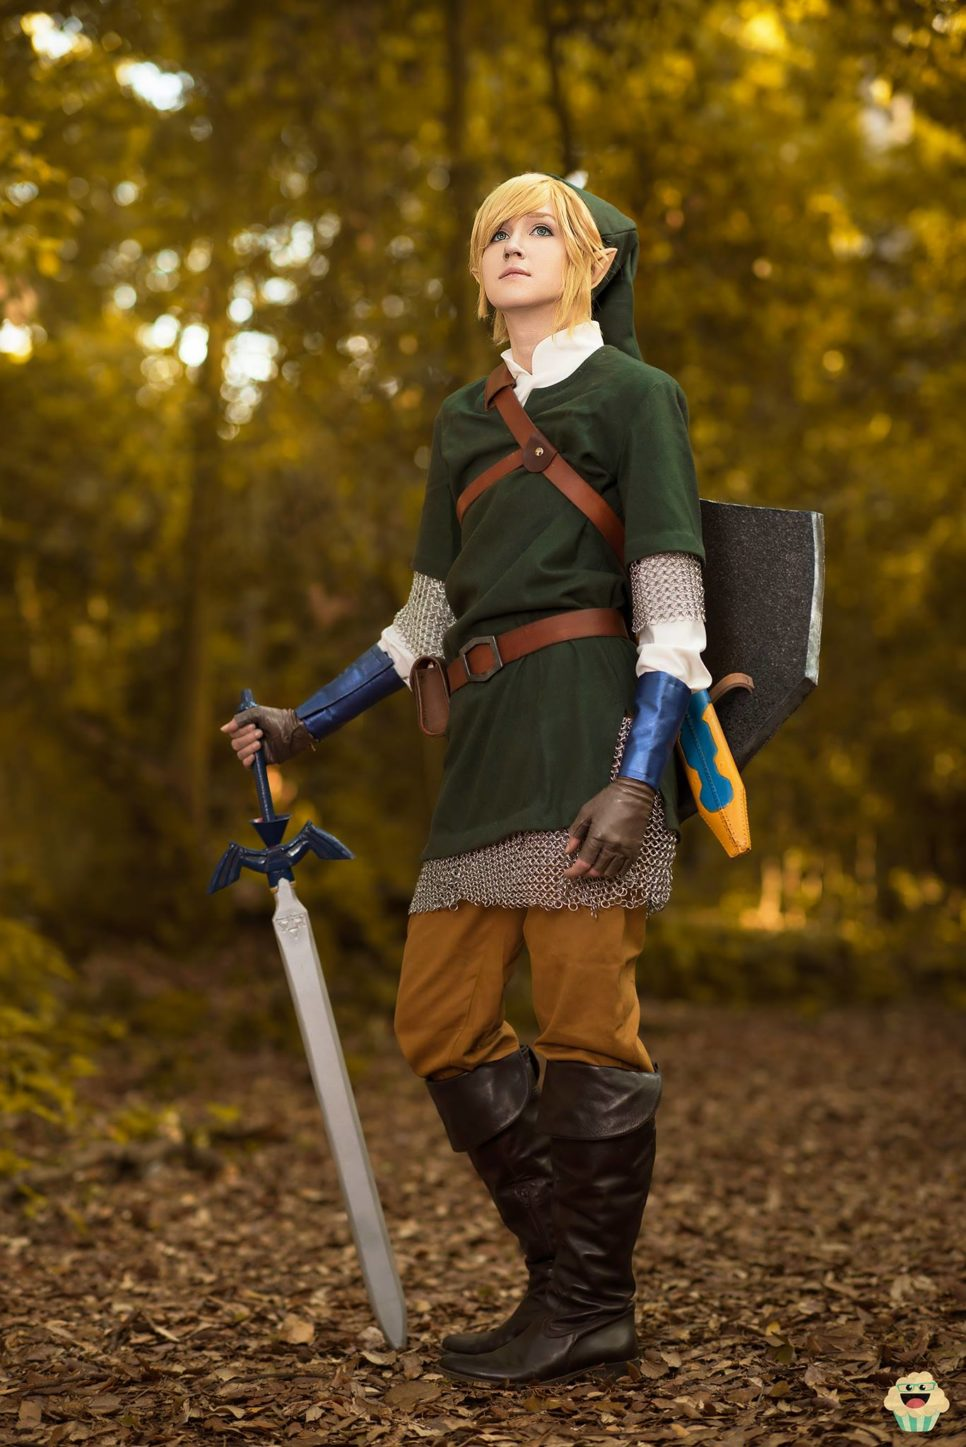 Link | The Legend of Zelda